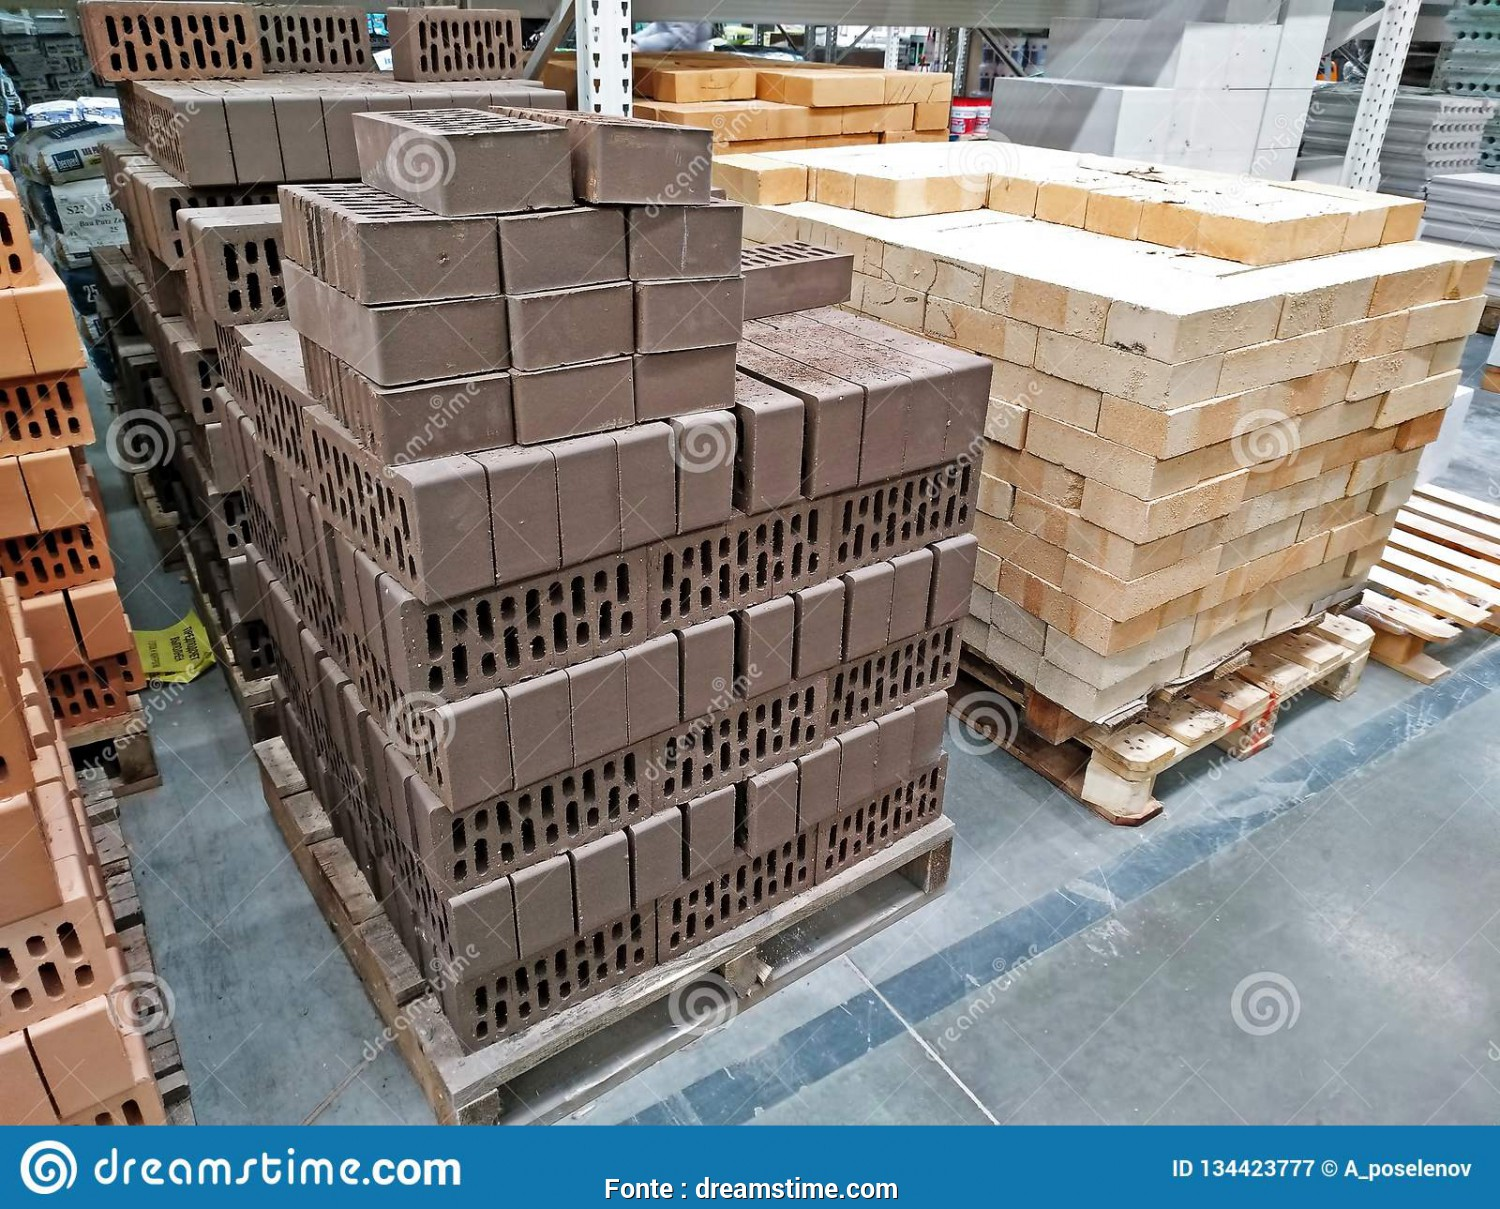 Leroy Merlin Pallet, Amabile KEMEROVO, RUSSIA, DECEMBER, 2018. Pallets With Various Kinds Of Bricks In A Large Building Materials Store Leroy Merlin